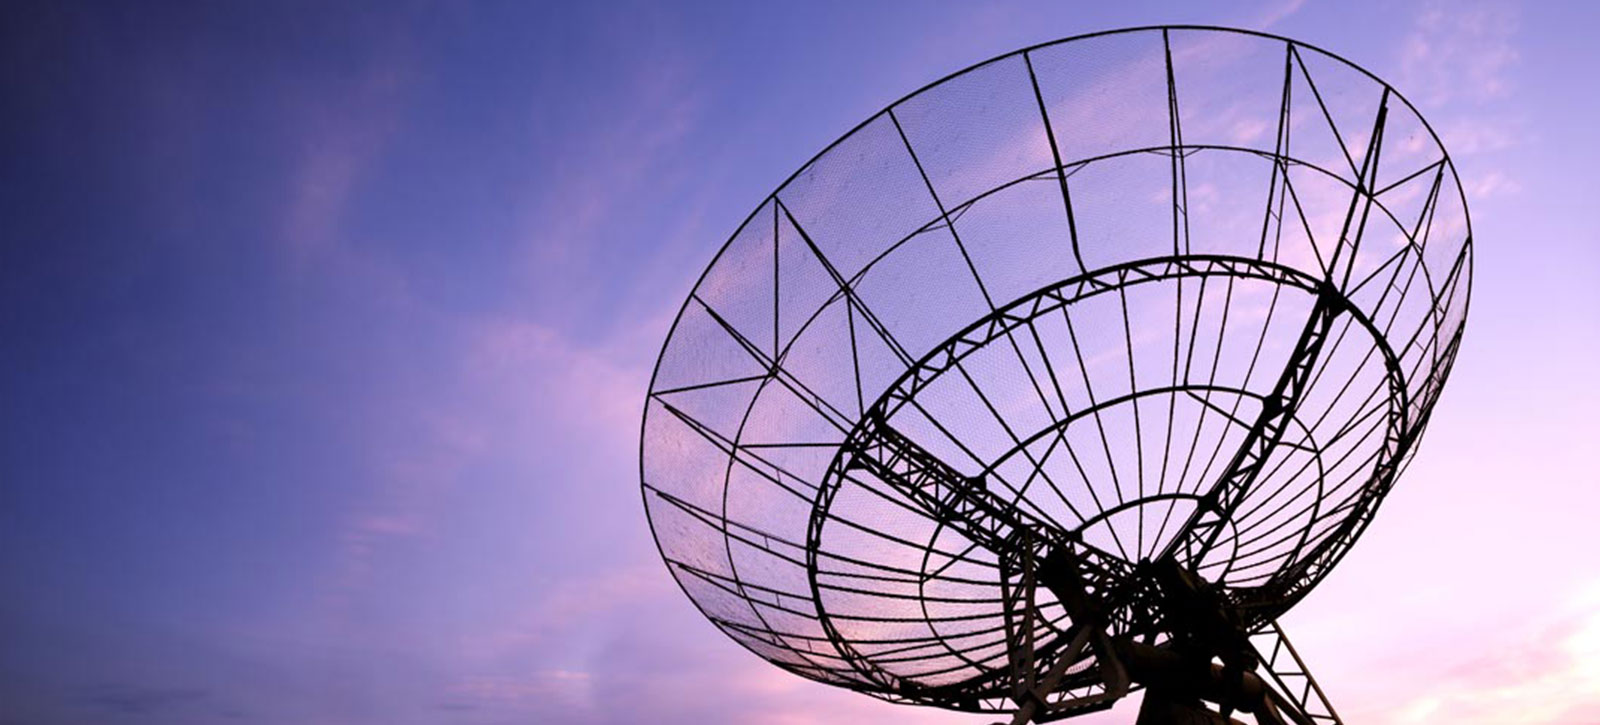 Choose The Right Website To Seek Services From The Best Satellite Internet Service Provider